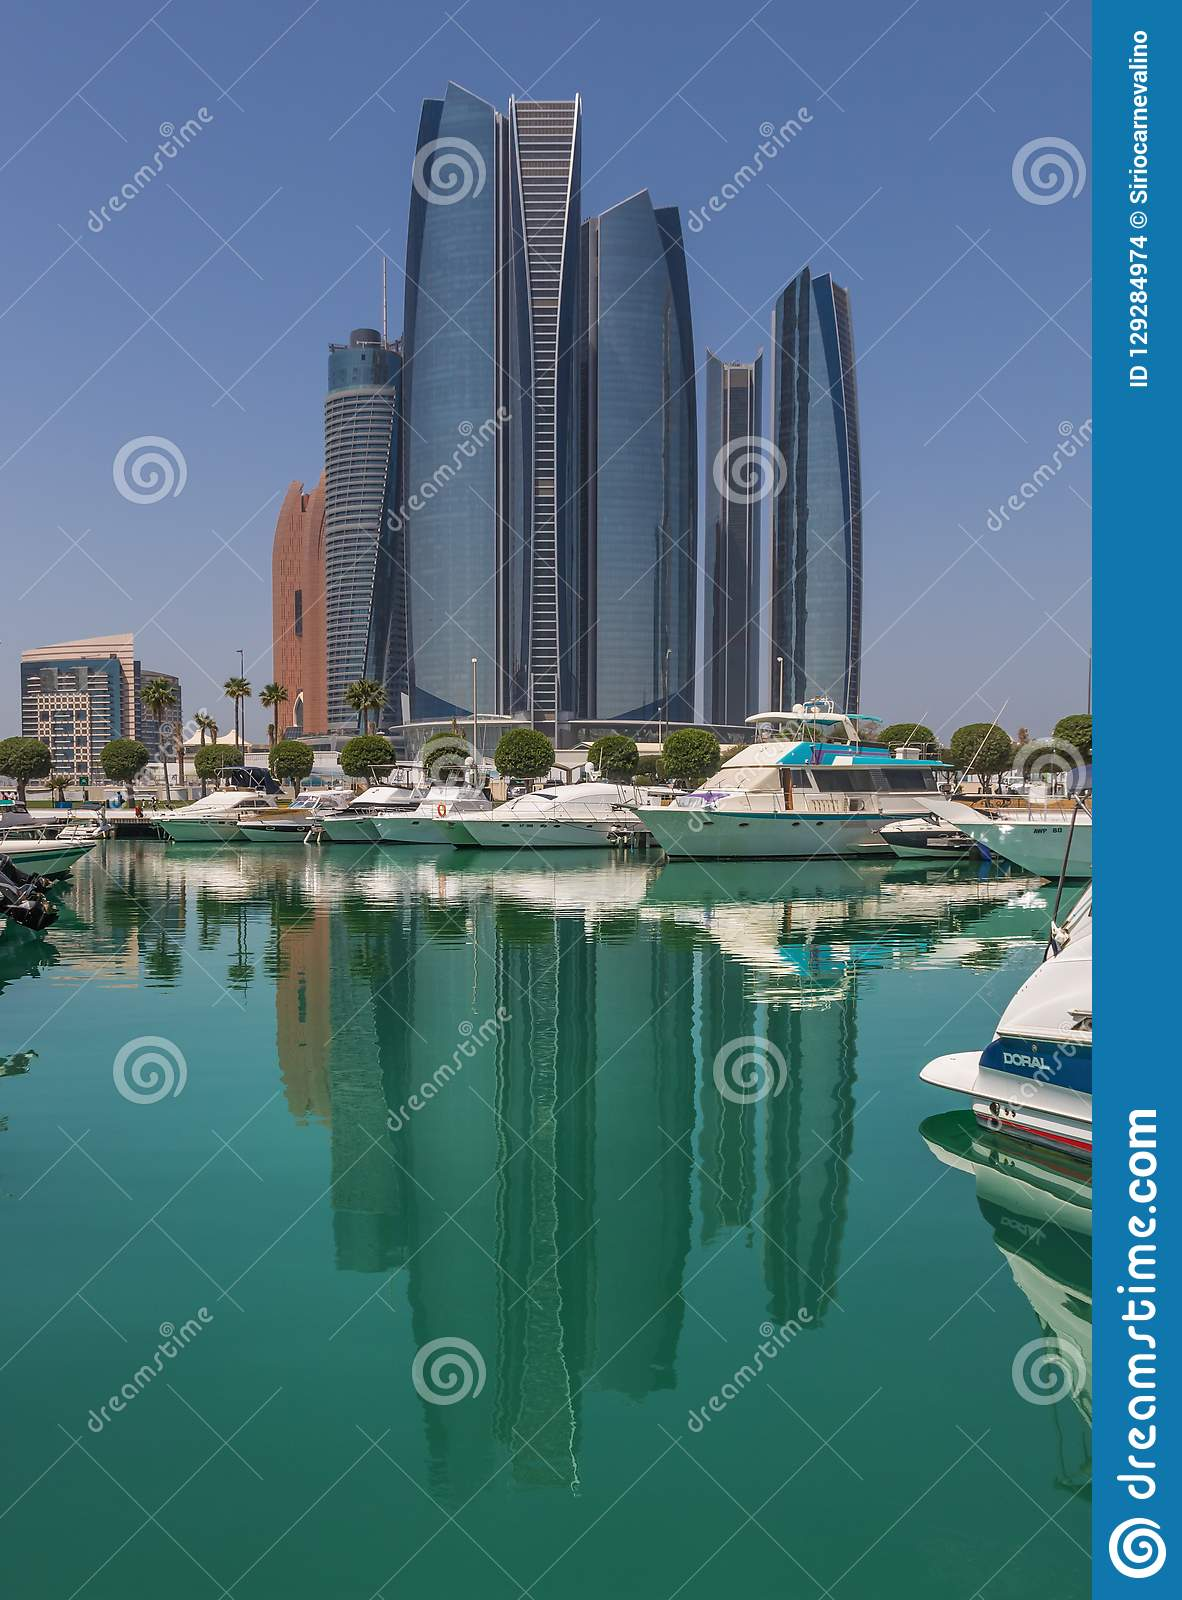 Abu Dhabi: a view from the roof